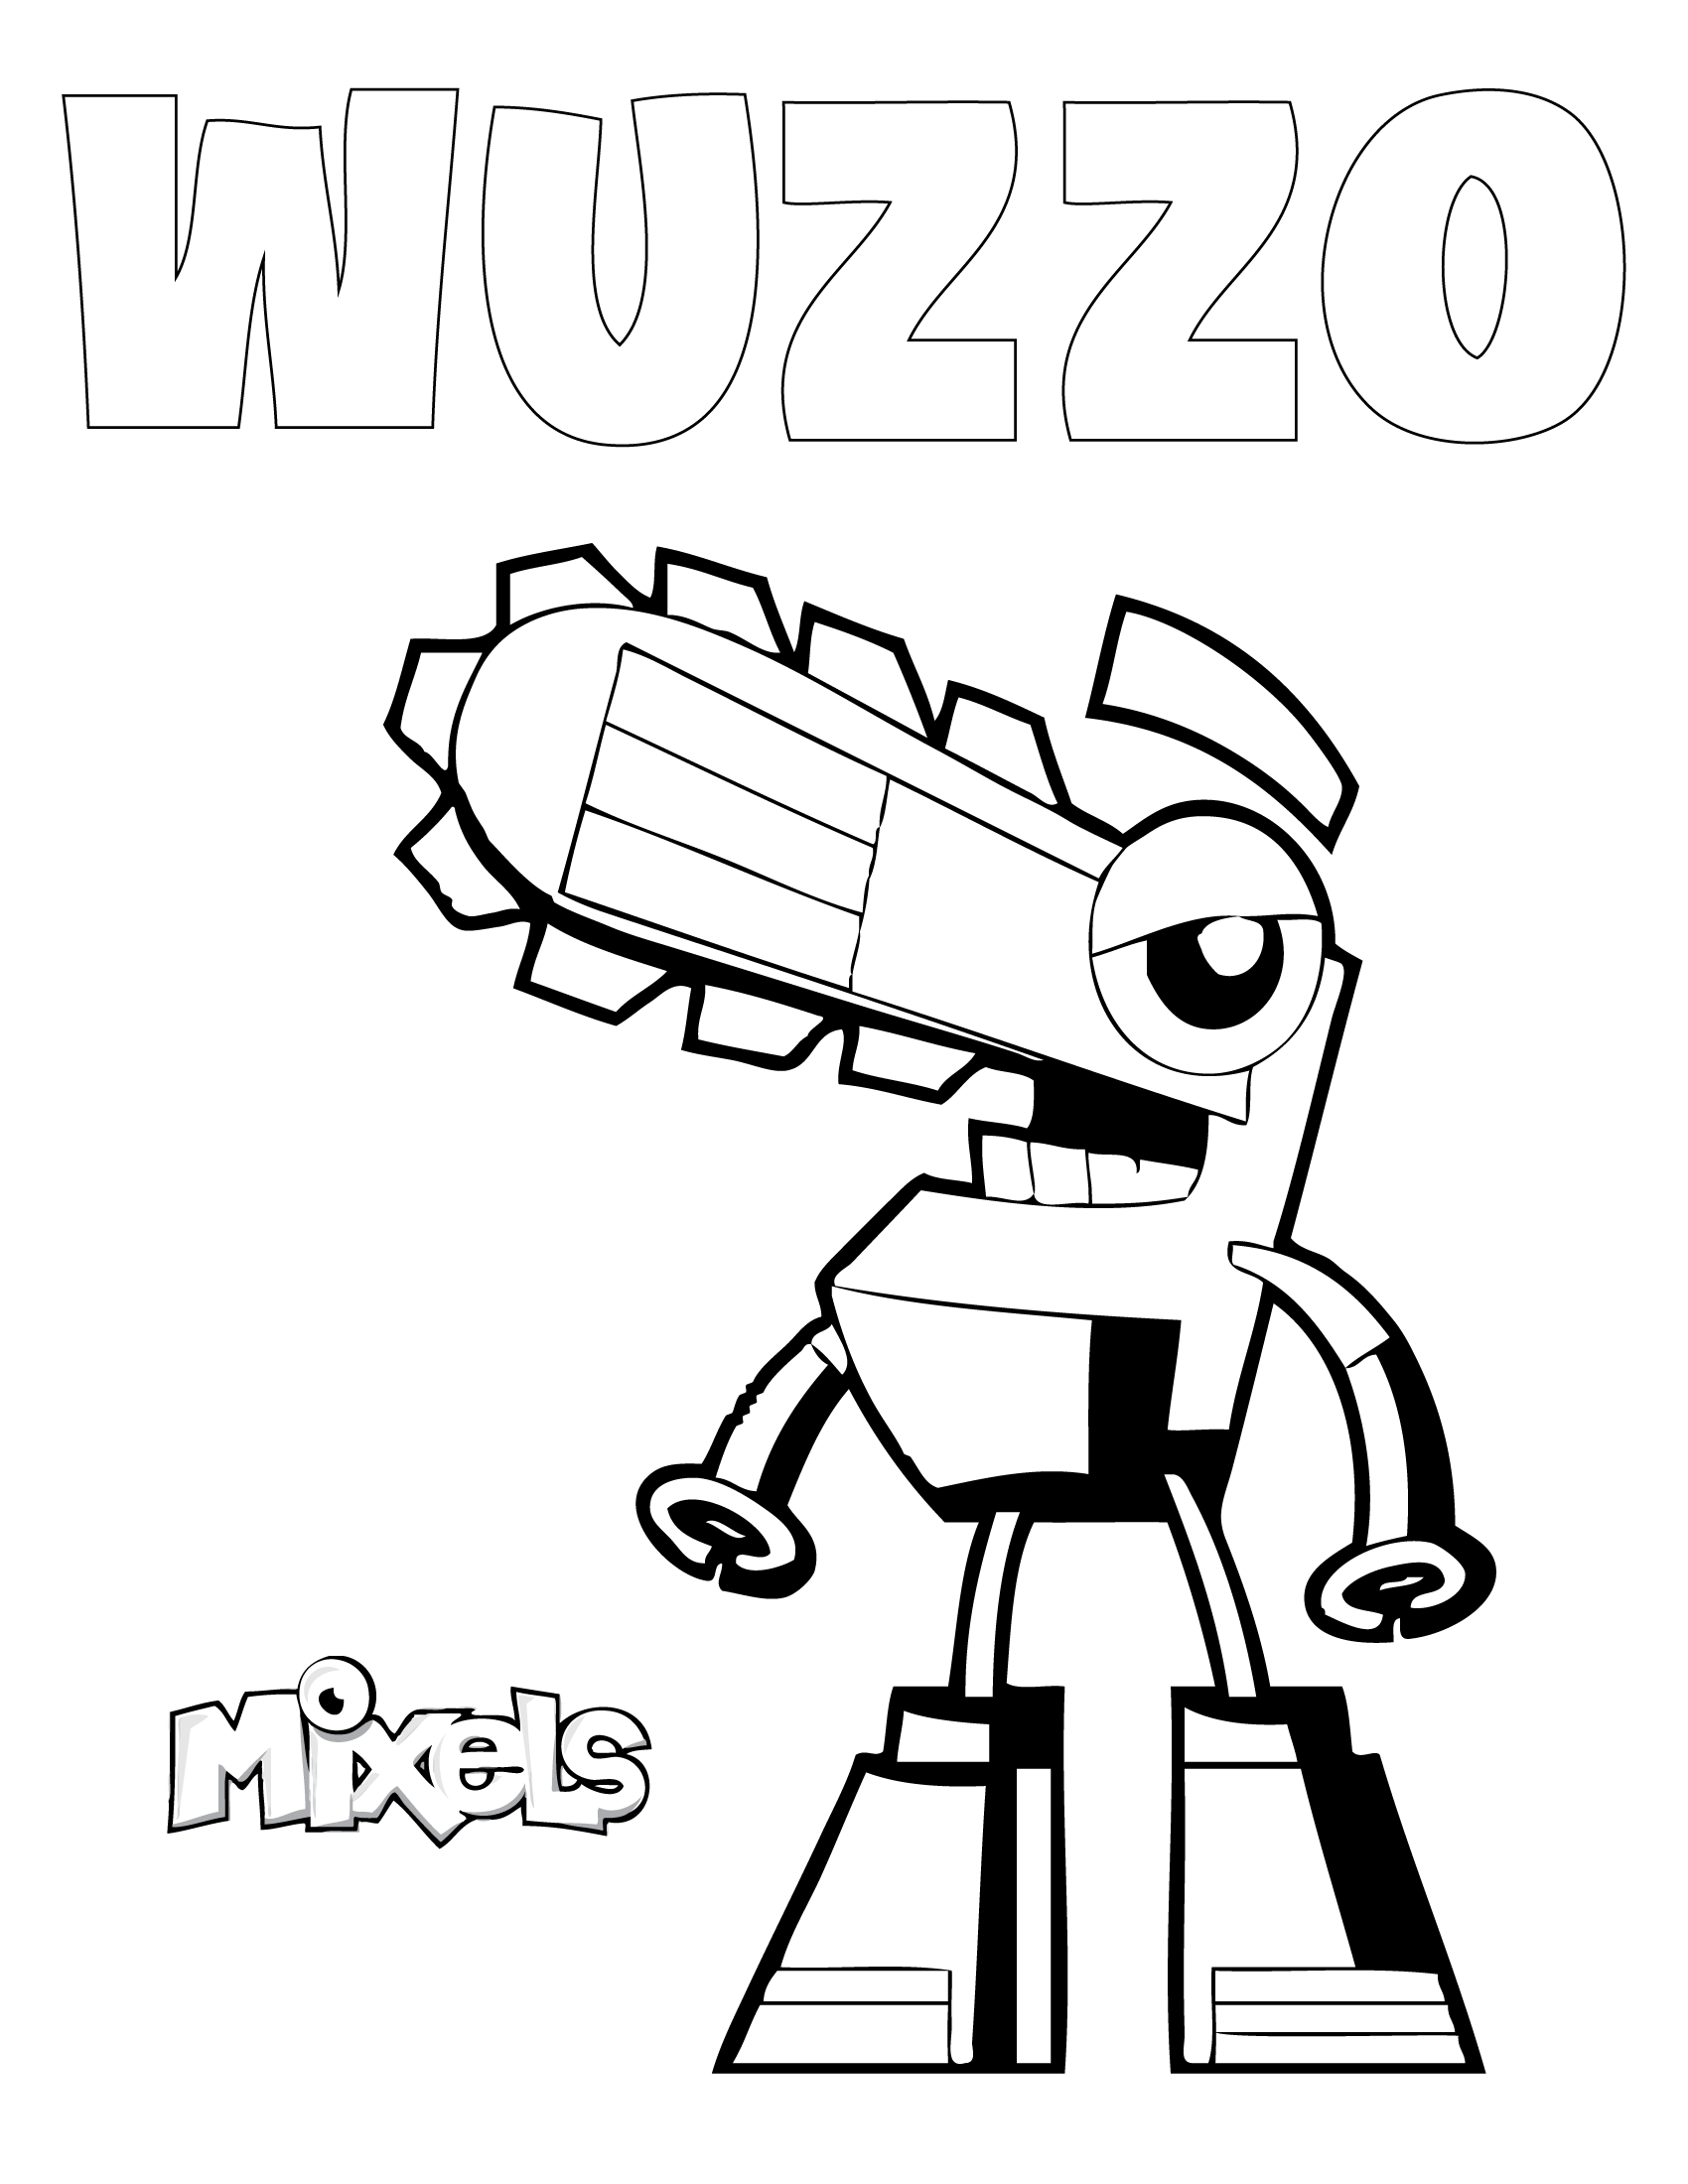 Mixels Coloring Pages Mixels Coloring Pages  Eric's Activity Pages  Page 2